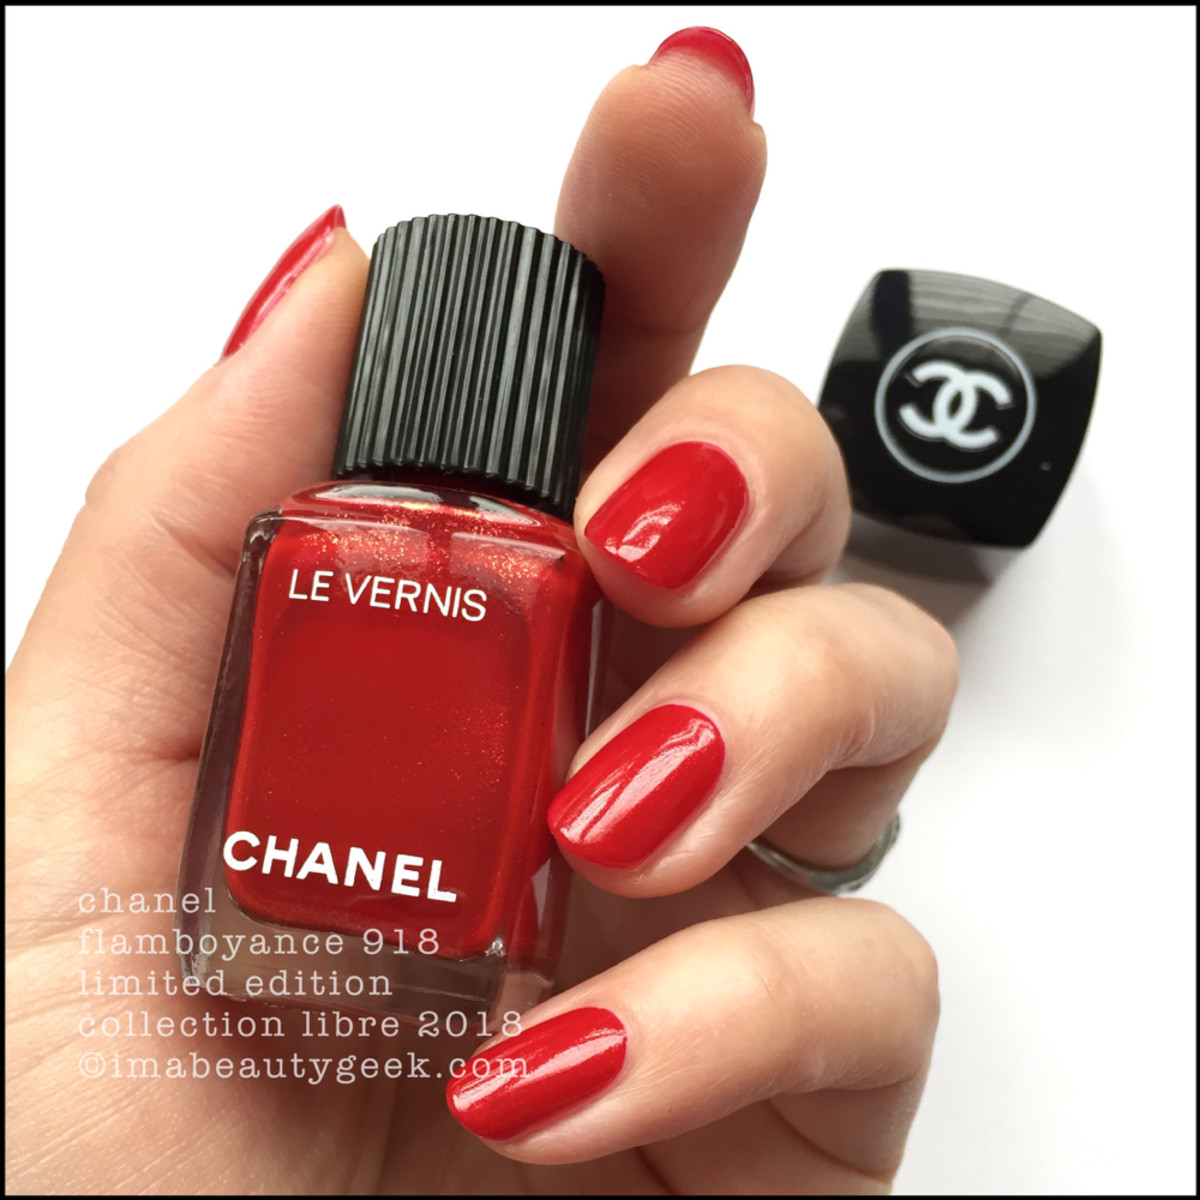 CHANEL HOLIDAY POLISH 2018 COLLECTION LIBRE LE VERNIS - Beautygeeks